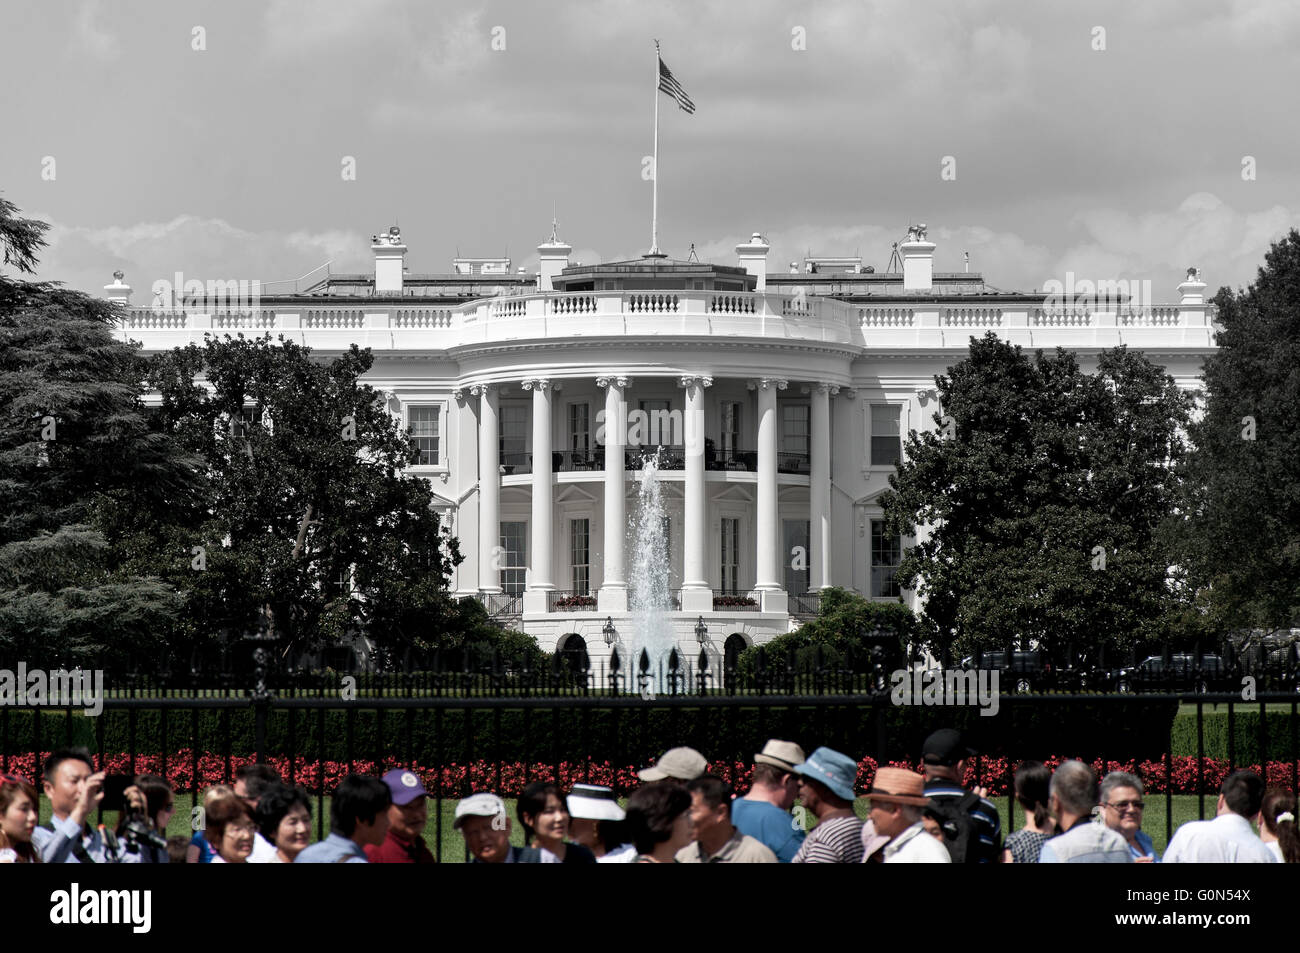 The White House in black and white with crowed in color. - Stock Image